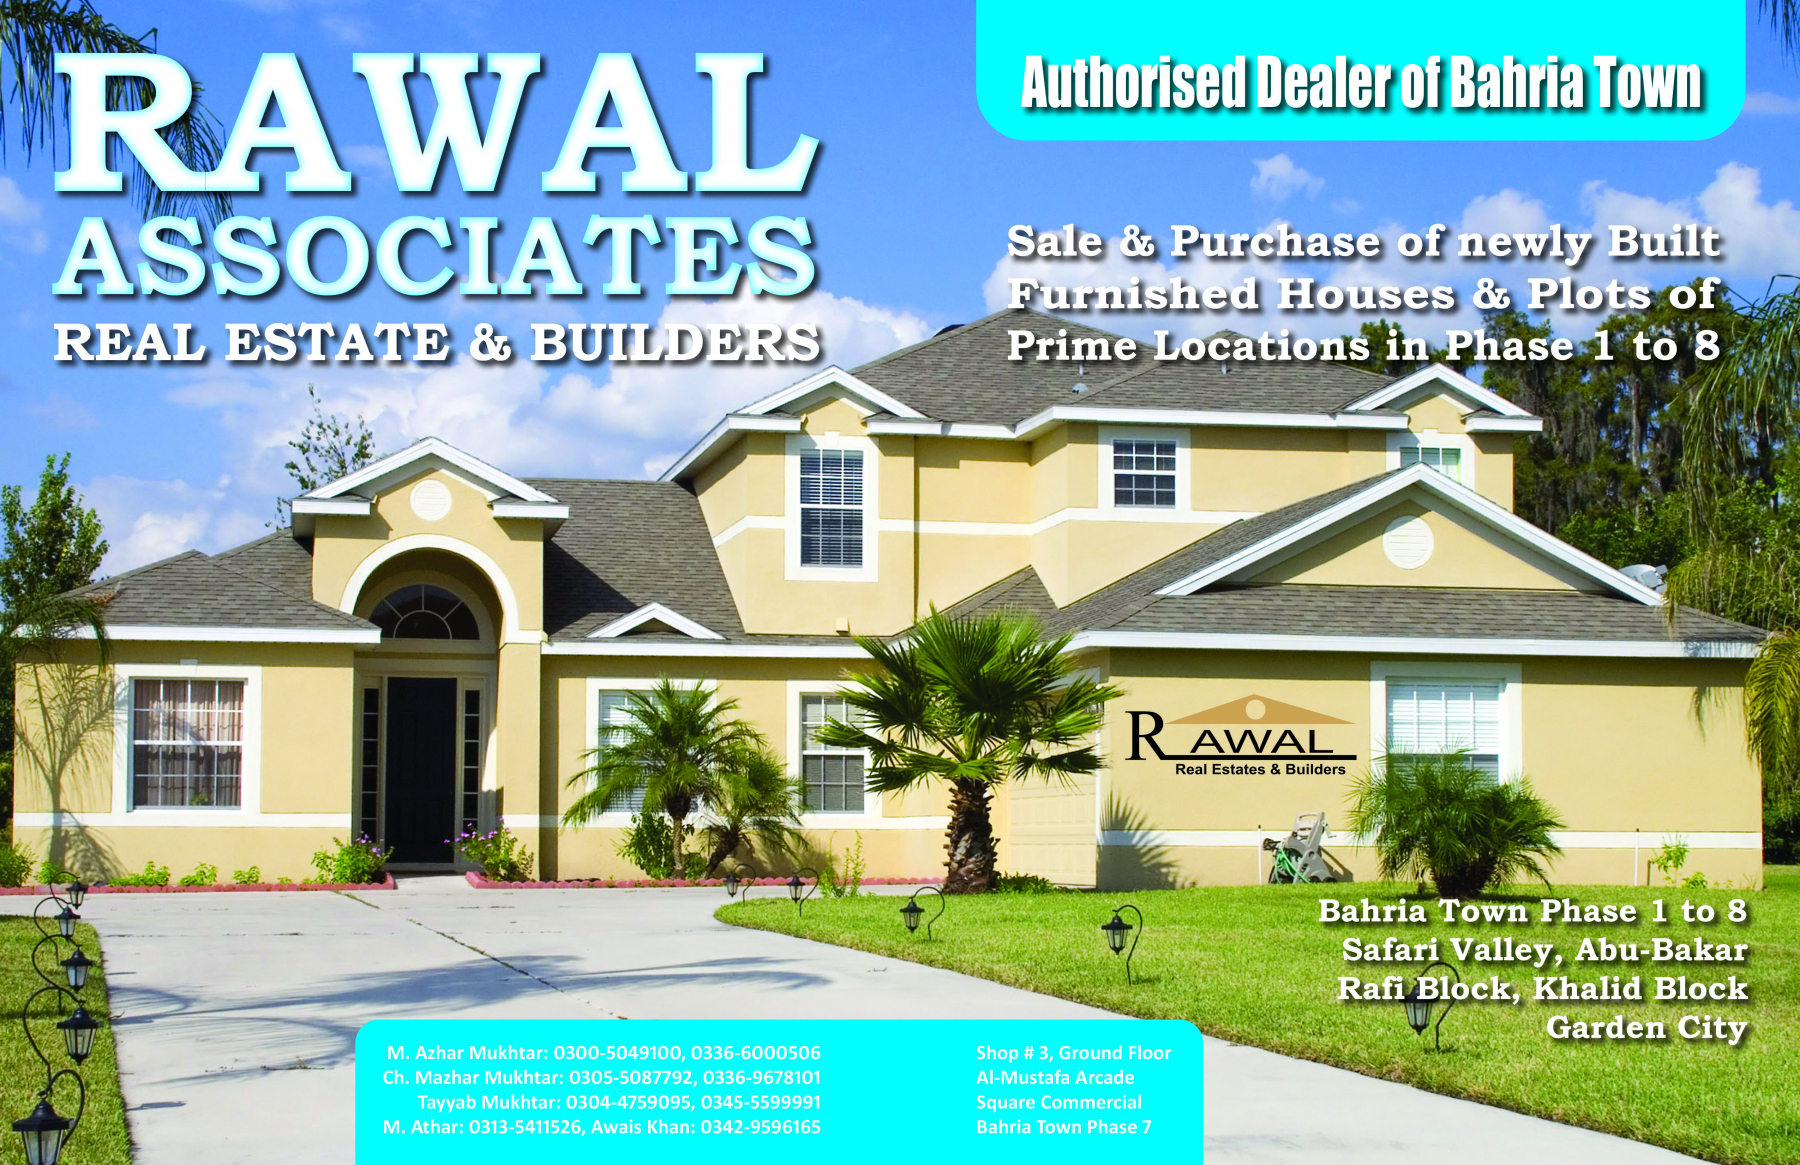 Rawal-Associates-Real-Estate-01-copy